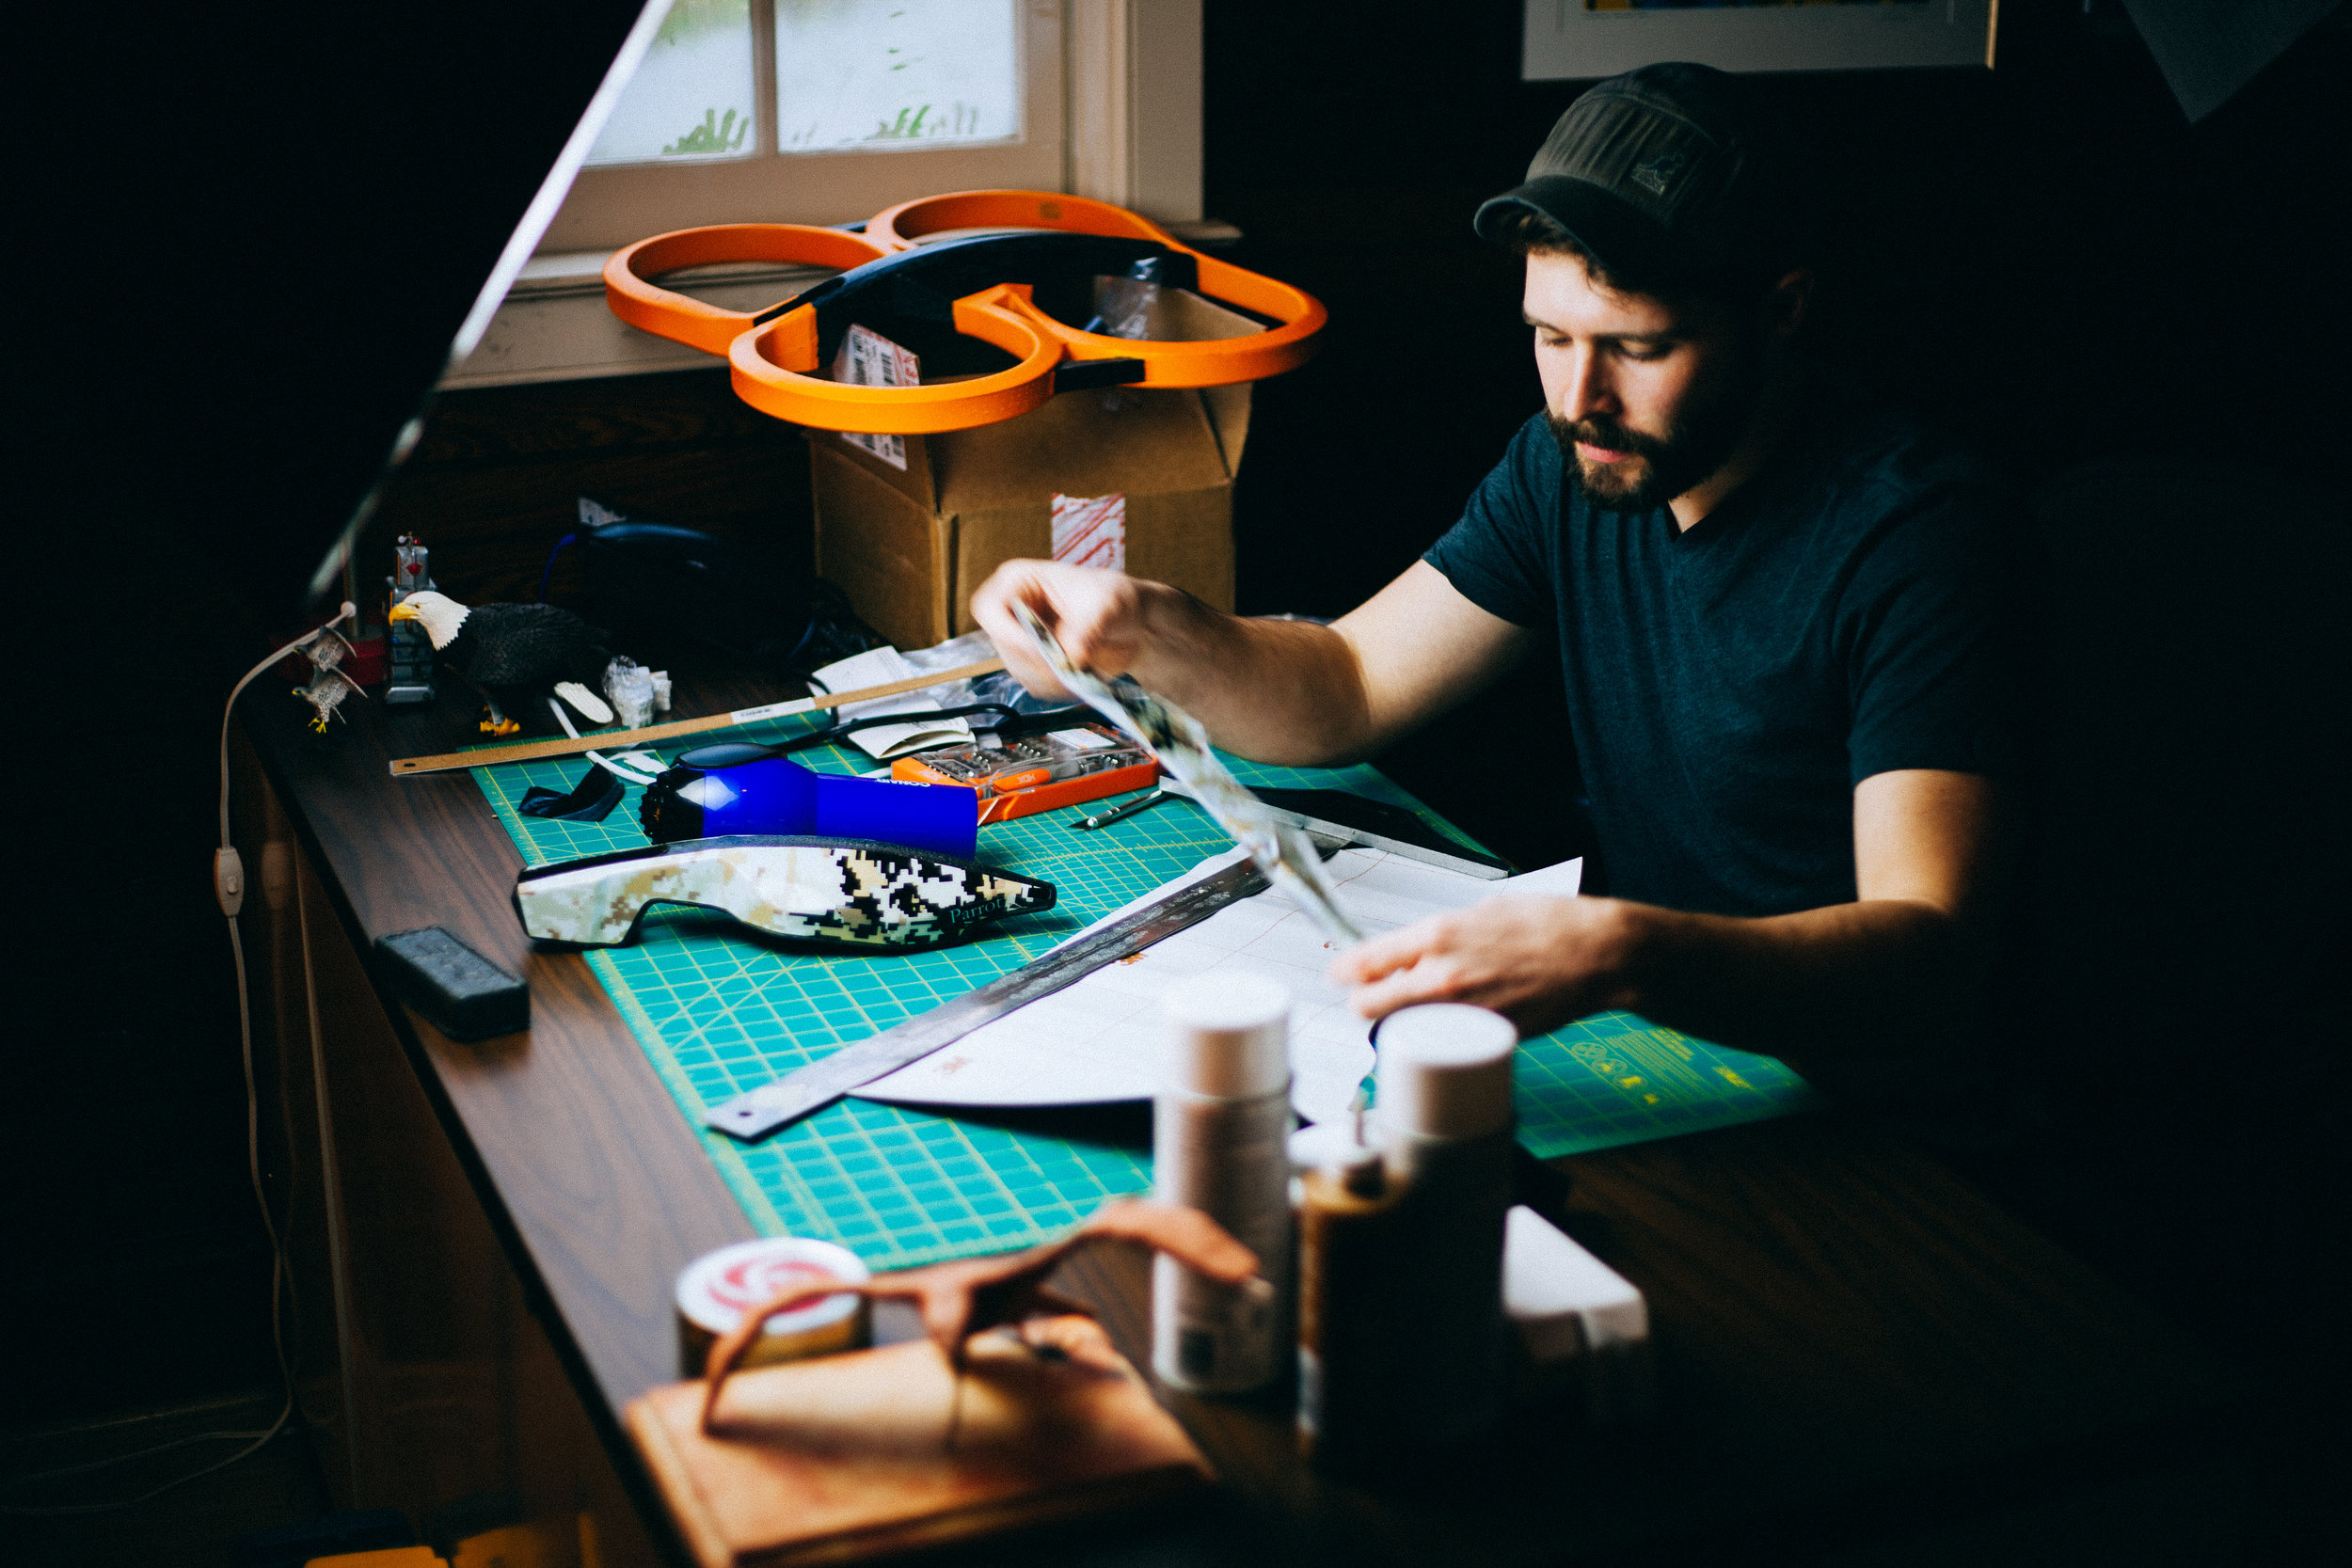 Behind the scenes creating new templates for the drone's carbon fiber bodywork. Orange color-matching test sits in the background.